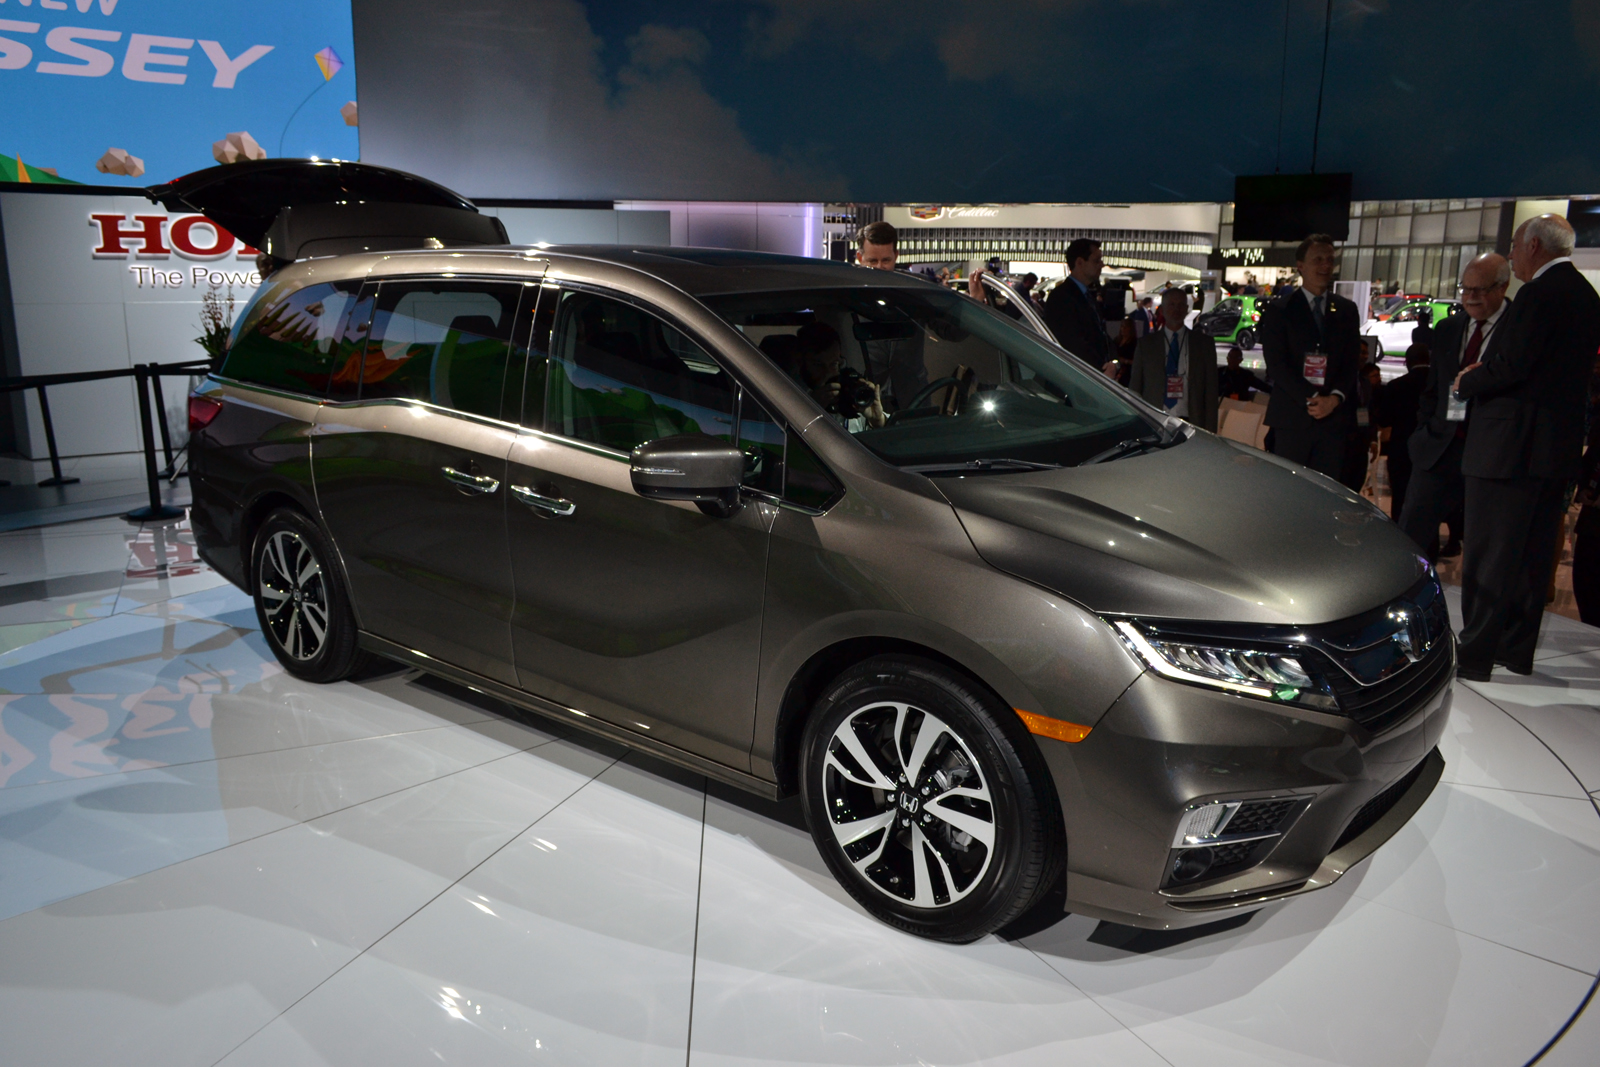 all new 2018 honda odyssey offers quieter cabin 10 speed transmission news. Black Bedroom Furniture Sets. Home Design Ideas